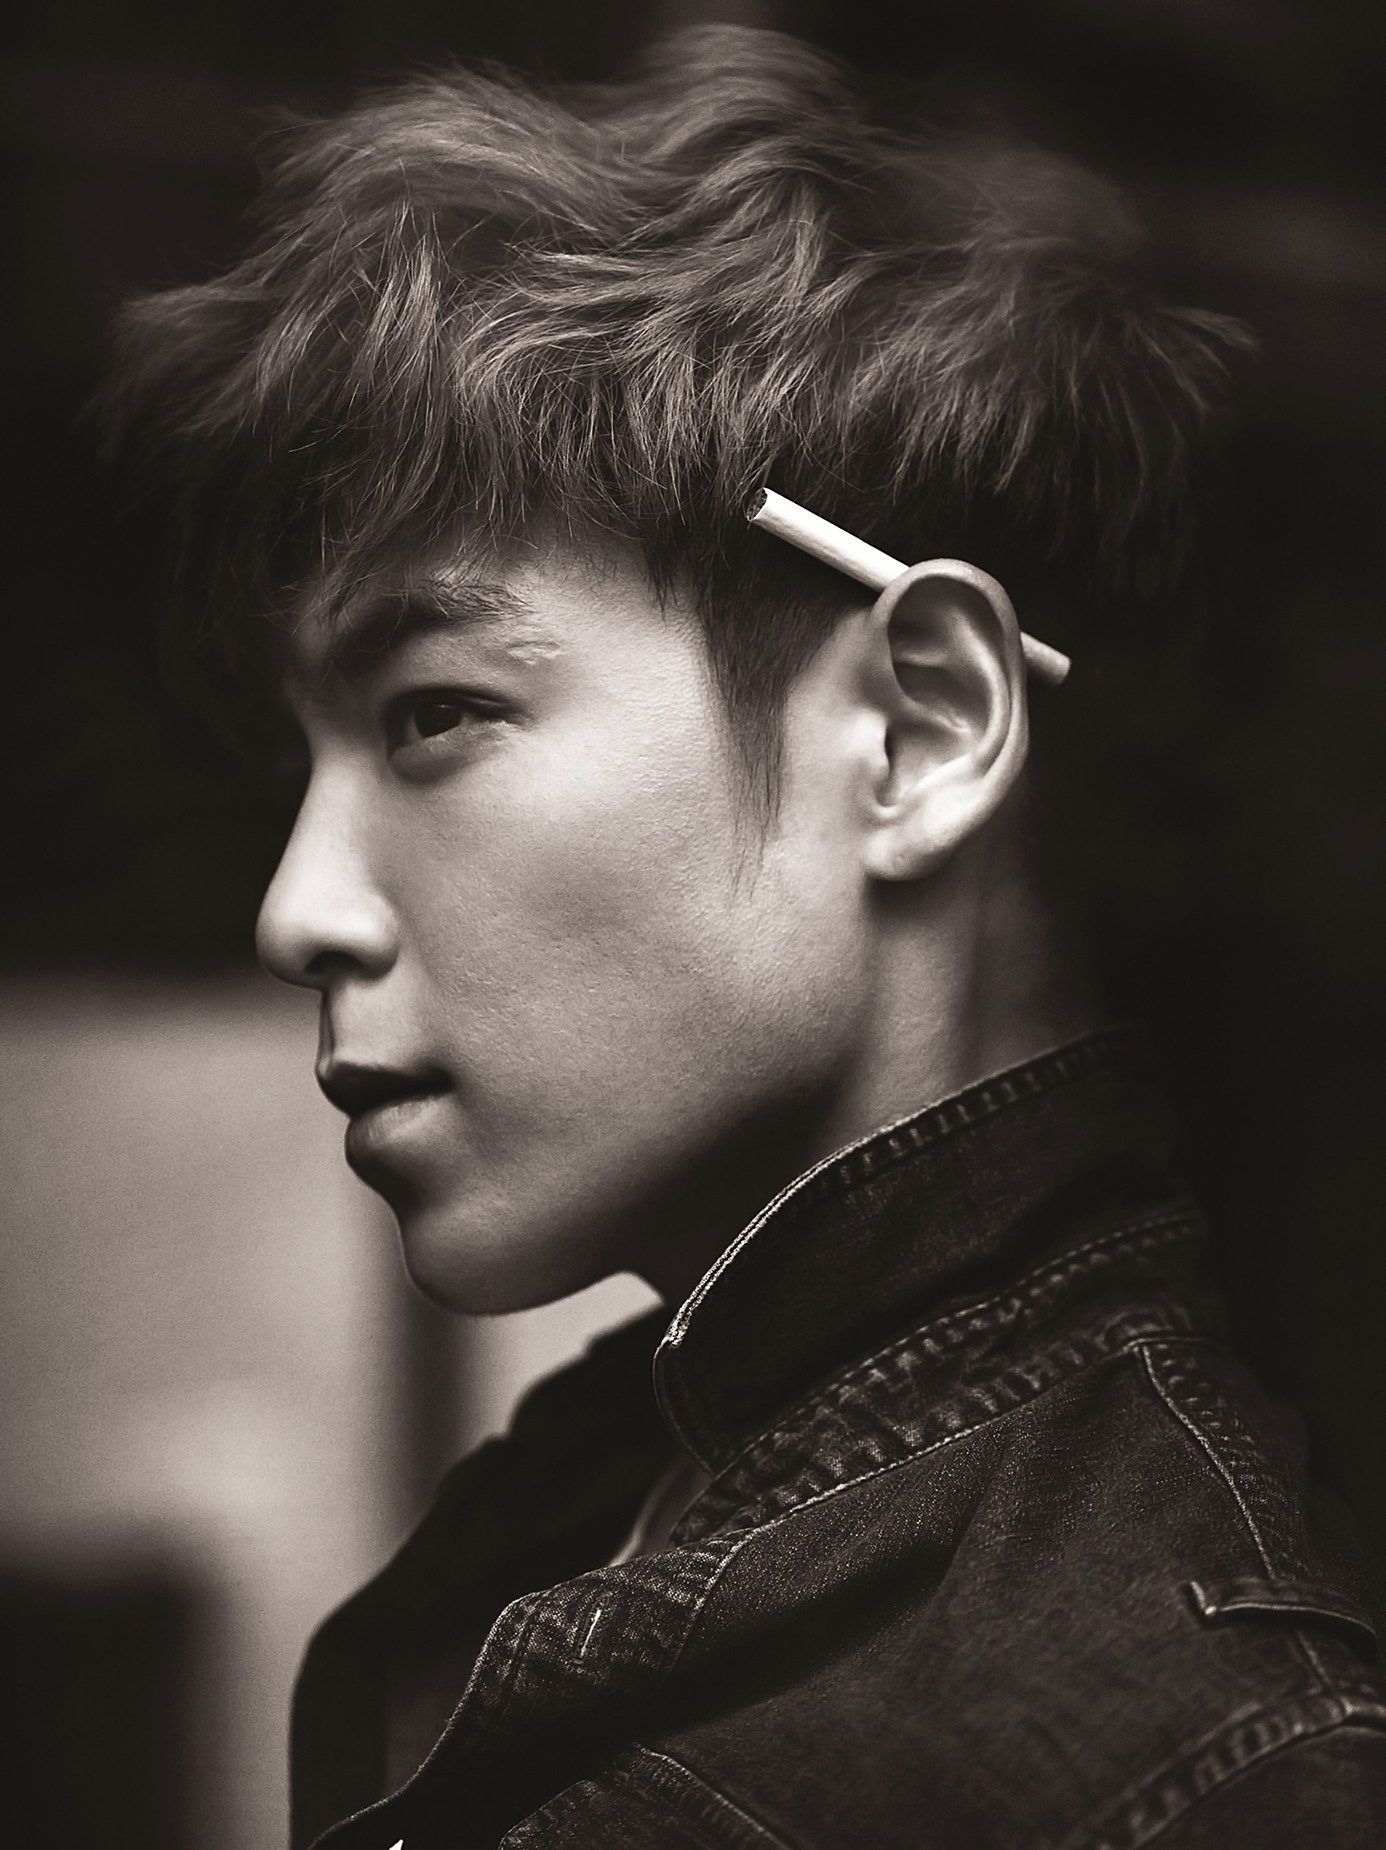 The Top 10 Fashion Trends Of 2012: T.O.P Profile